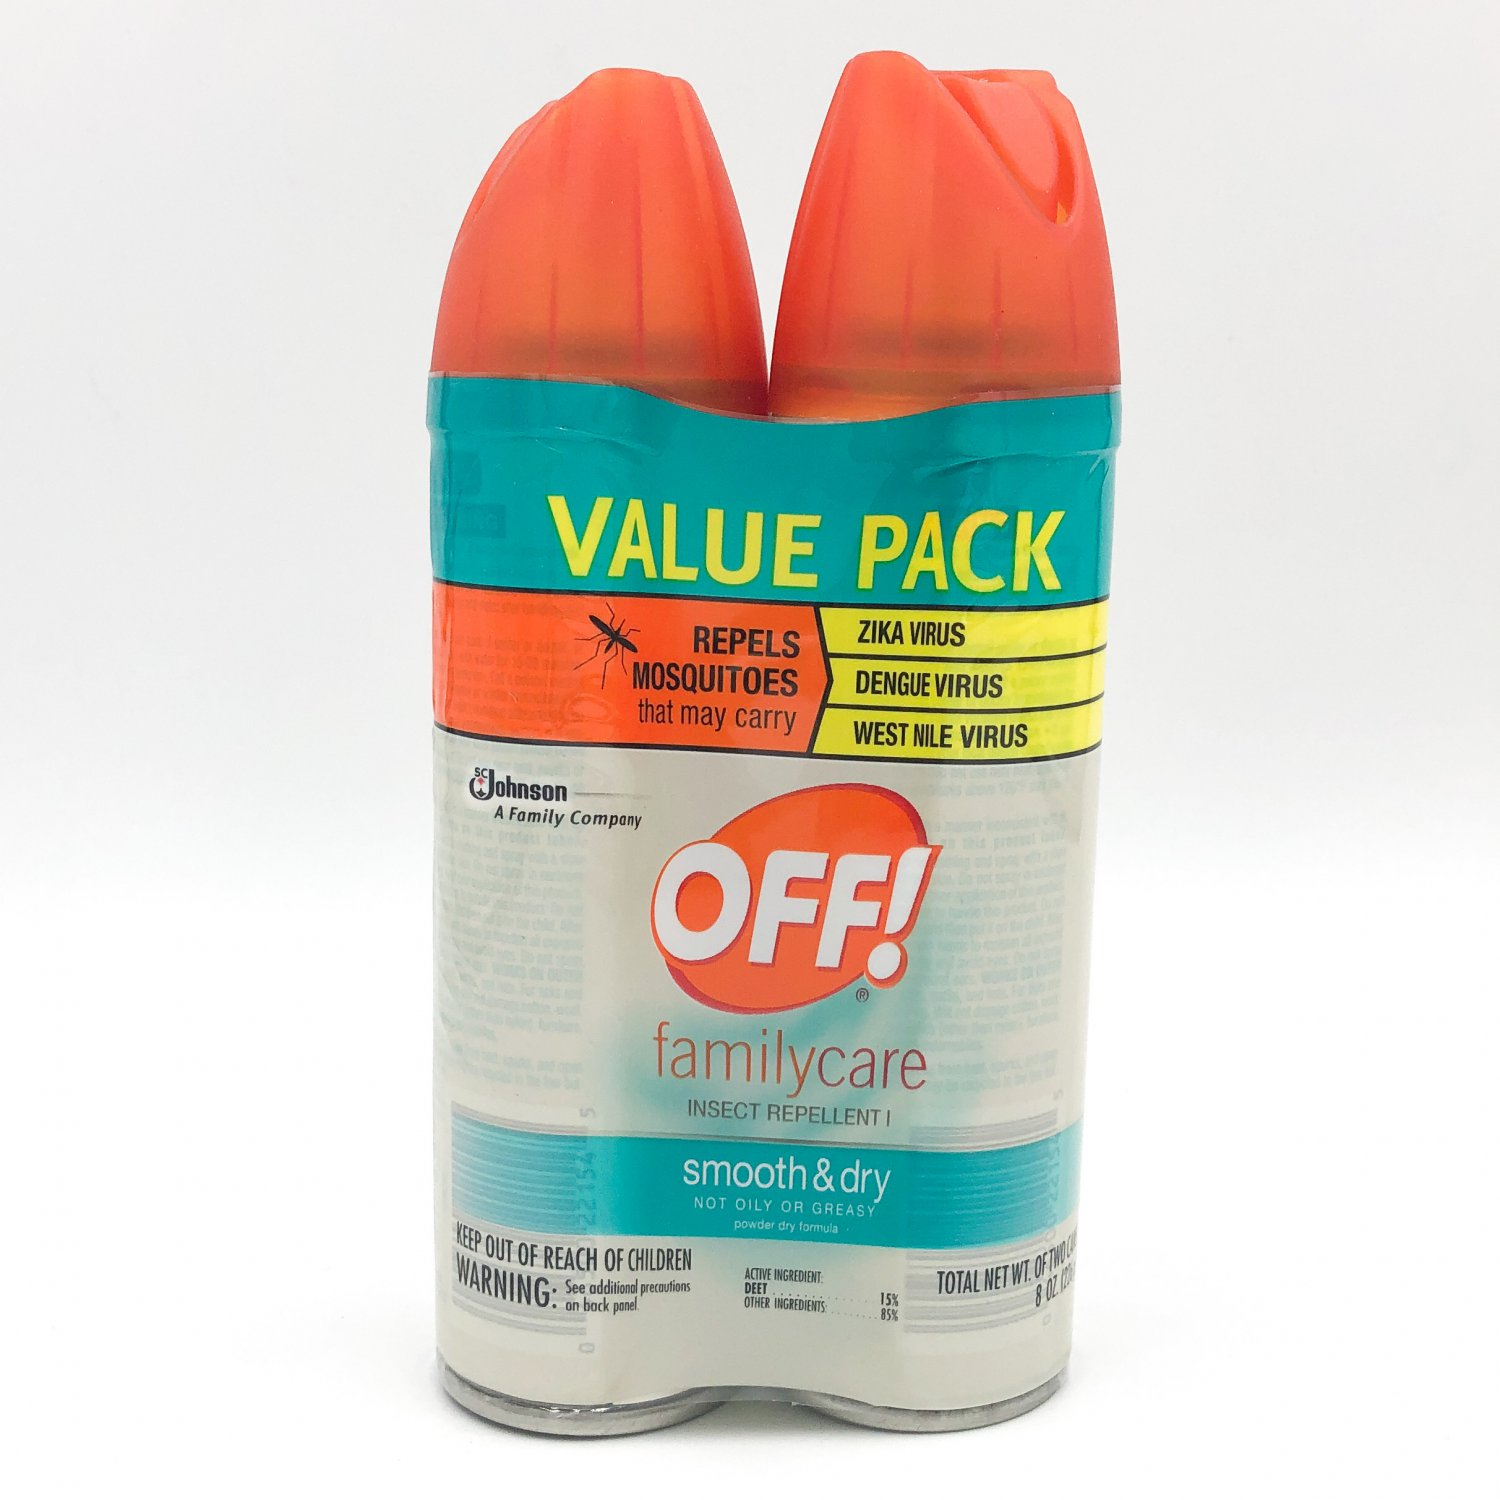 OFF! Family Care Insect Repellent I Smooth & Dry 2-Pack Bug Spray